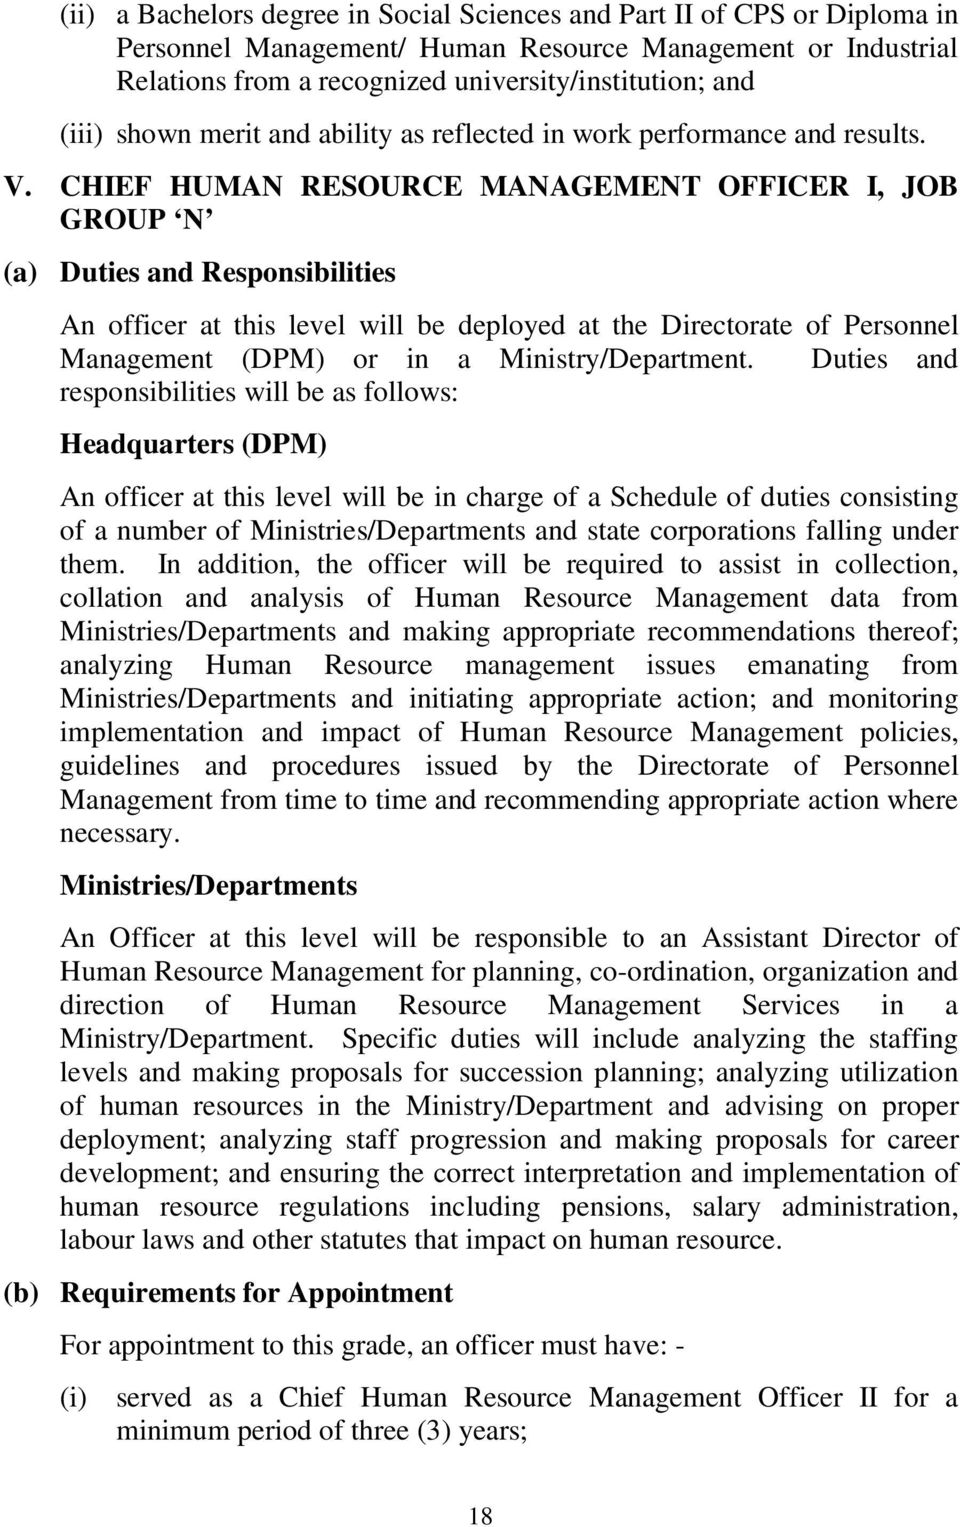 CHIEF HUMAN RESOURCE MANAGEMENT OFFICER I, JOB GROUP N An officer at this level will be deployed at the Directorate of Personnel Management (DPM) or in a Ministry/Department.